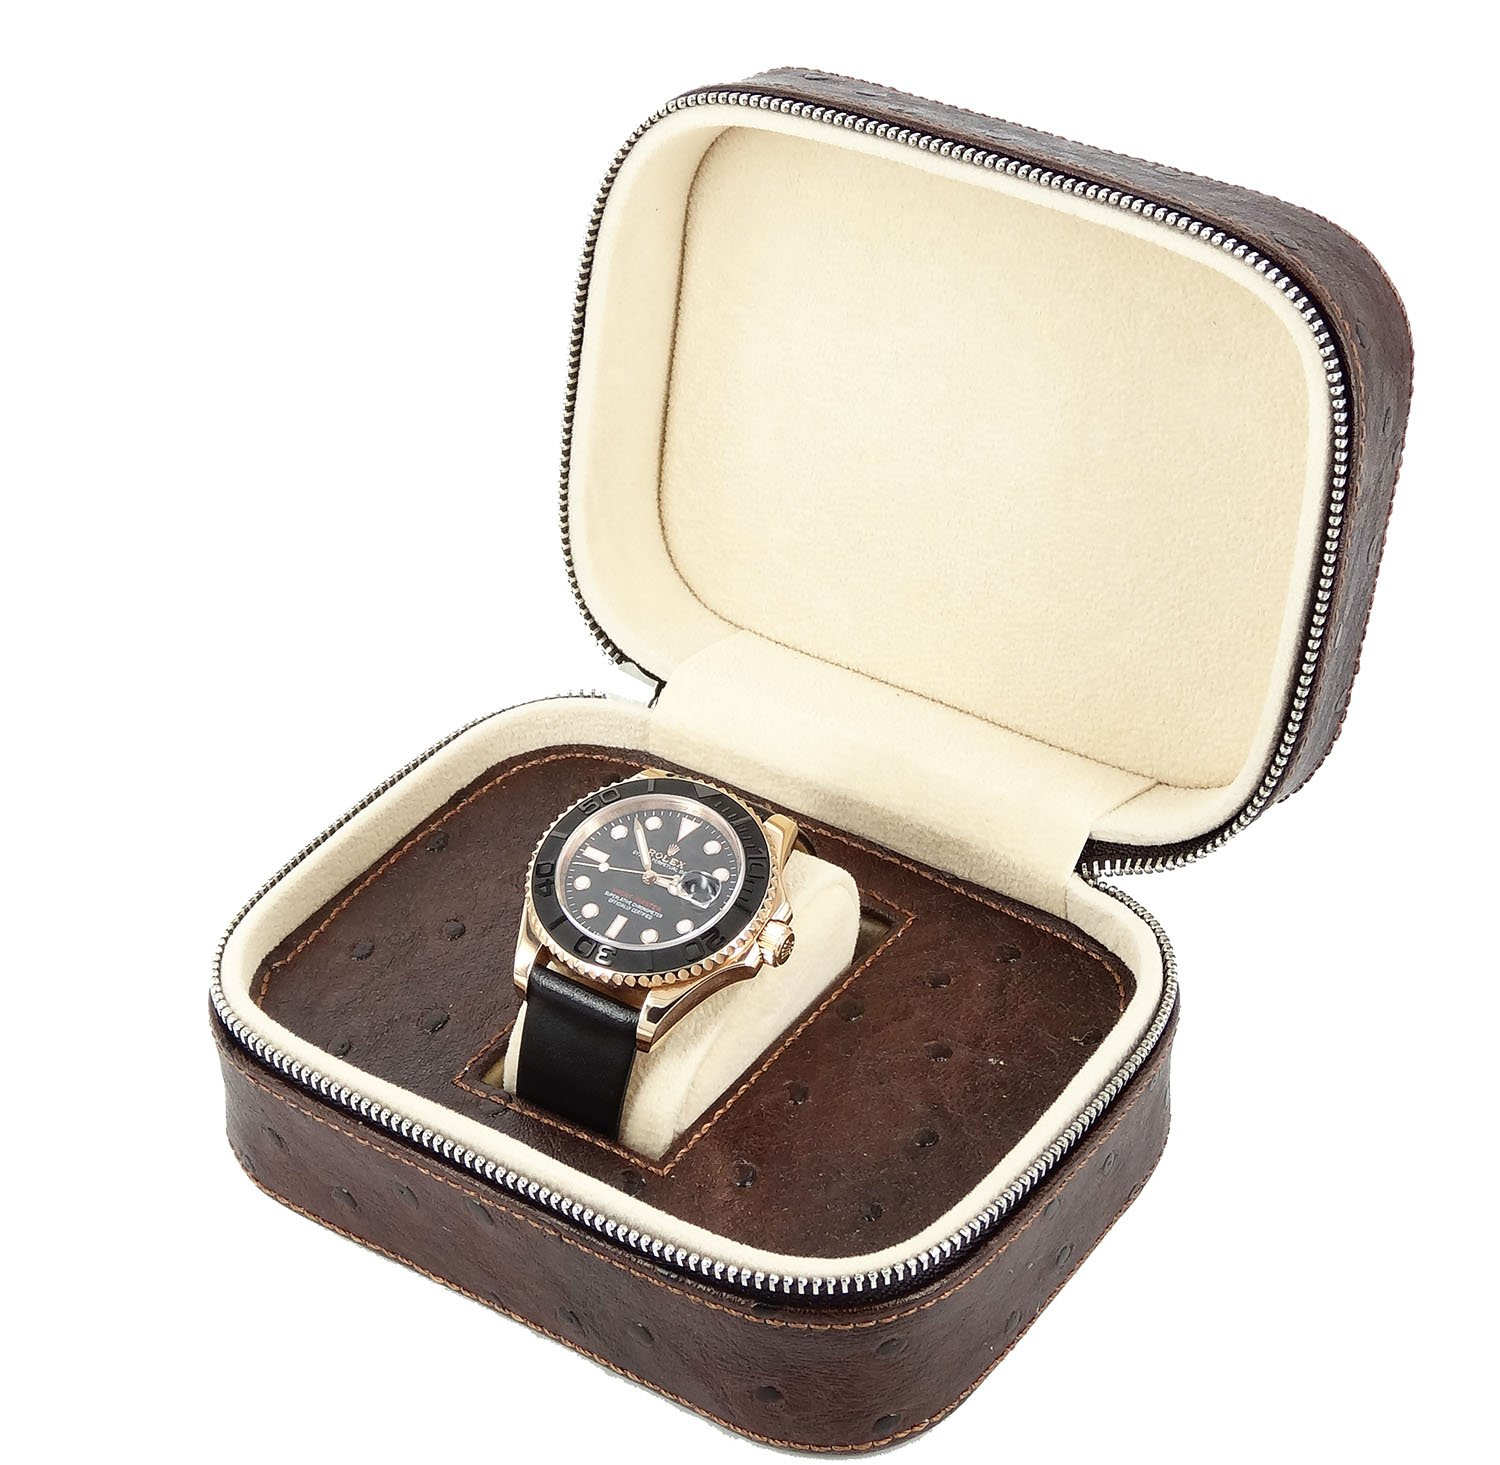 NEW Gift Brown Leather 1-Slot Watch Travel Storage CASE Bag Watch